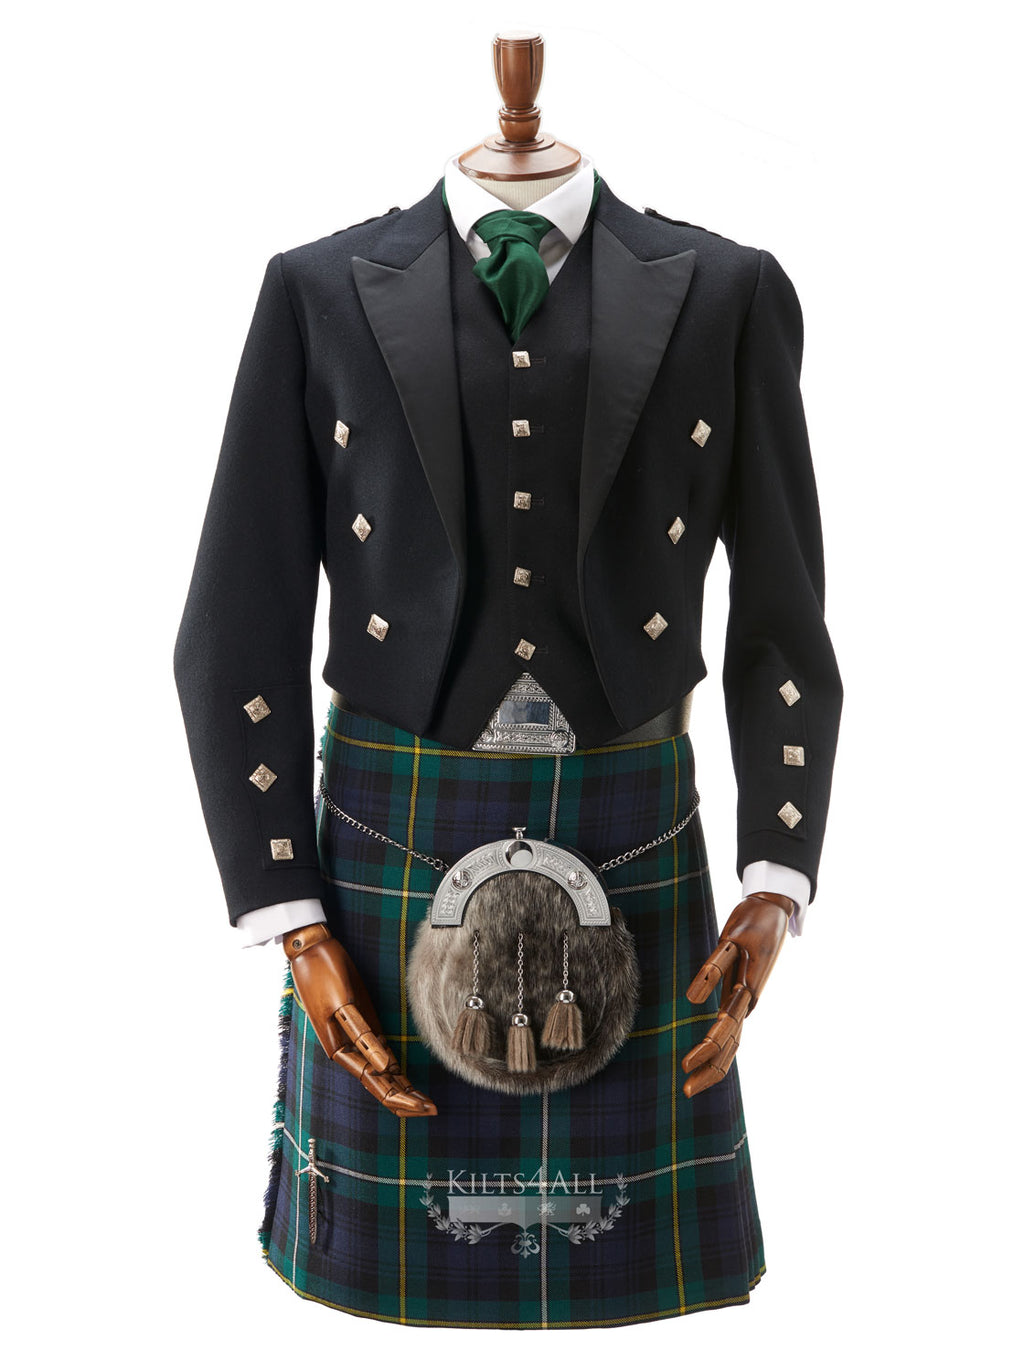 Mens Welsh National Tartan Kilt Outfit to Hire - Prince Charlie Jacket & 5 Button Waistcoat